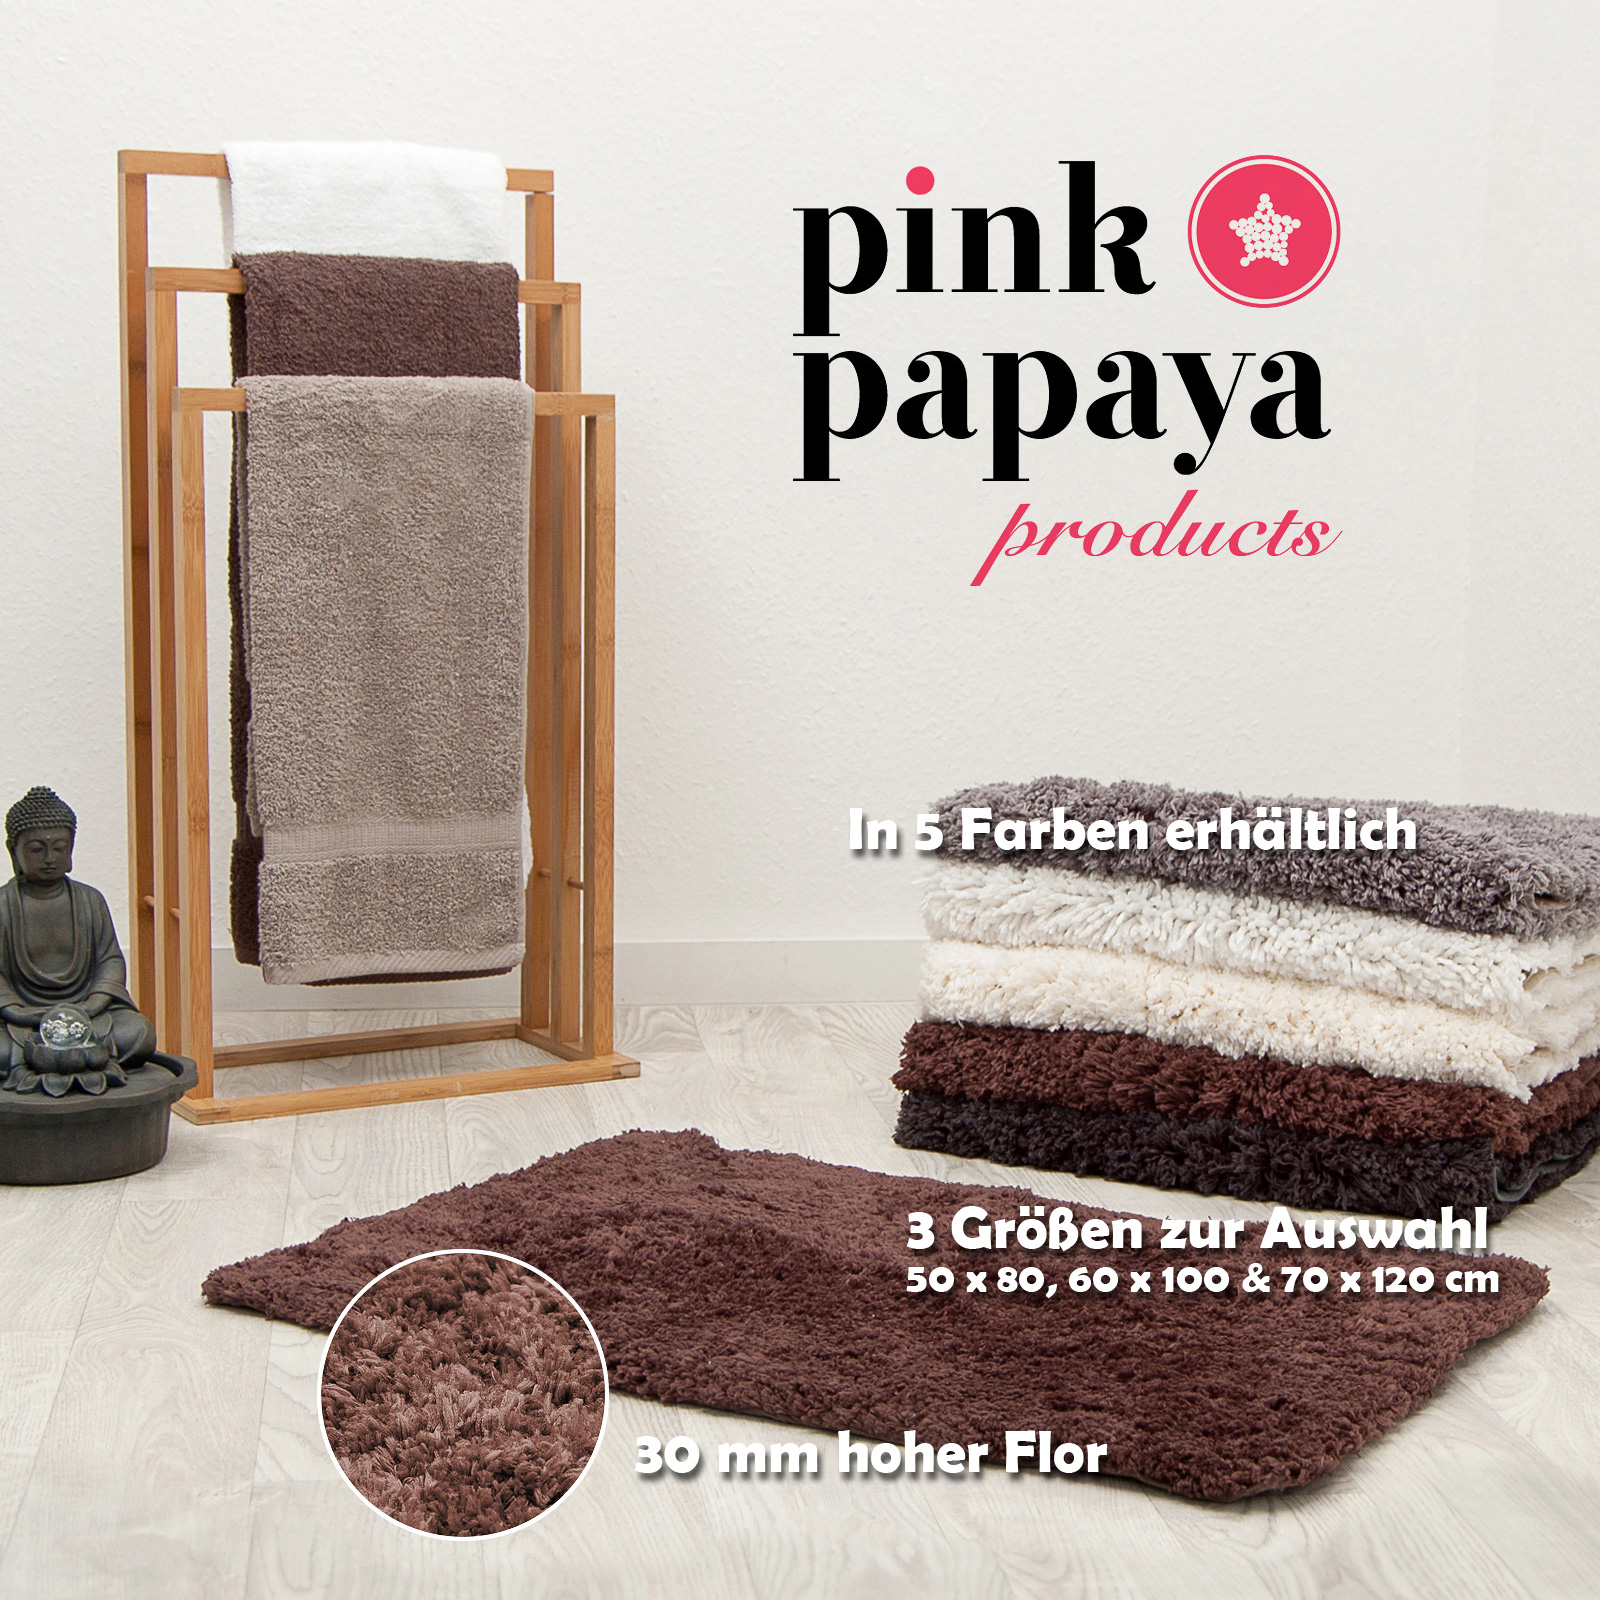 pink papaya hochflor luxus badteppich cloud 70 x 120 cm braun ebay. Black Bedroom Furniture Sets. Home Design Ideas